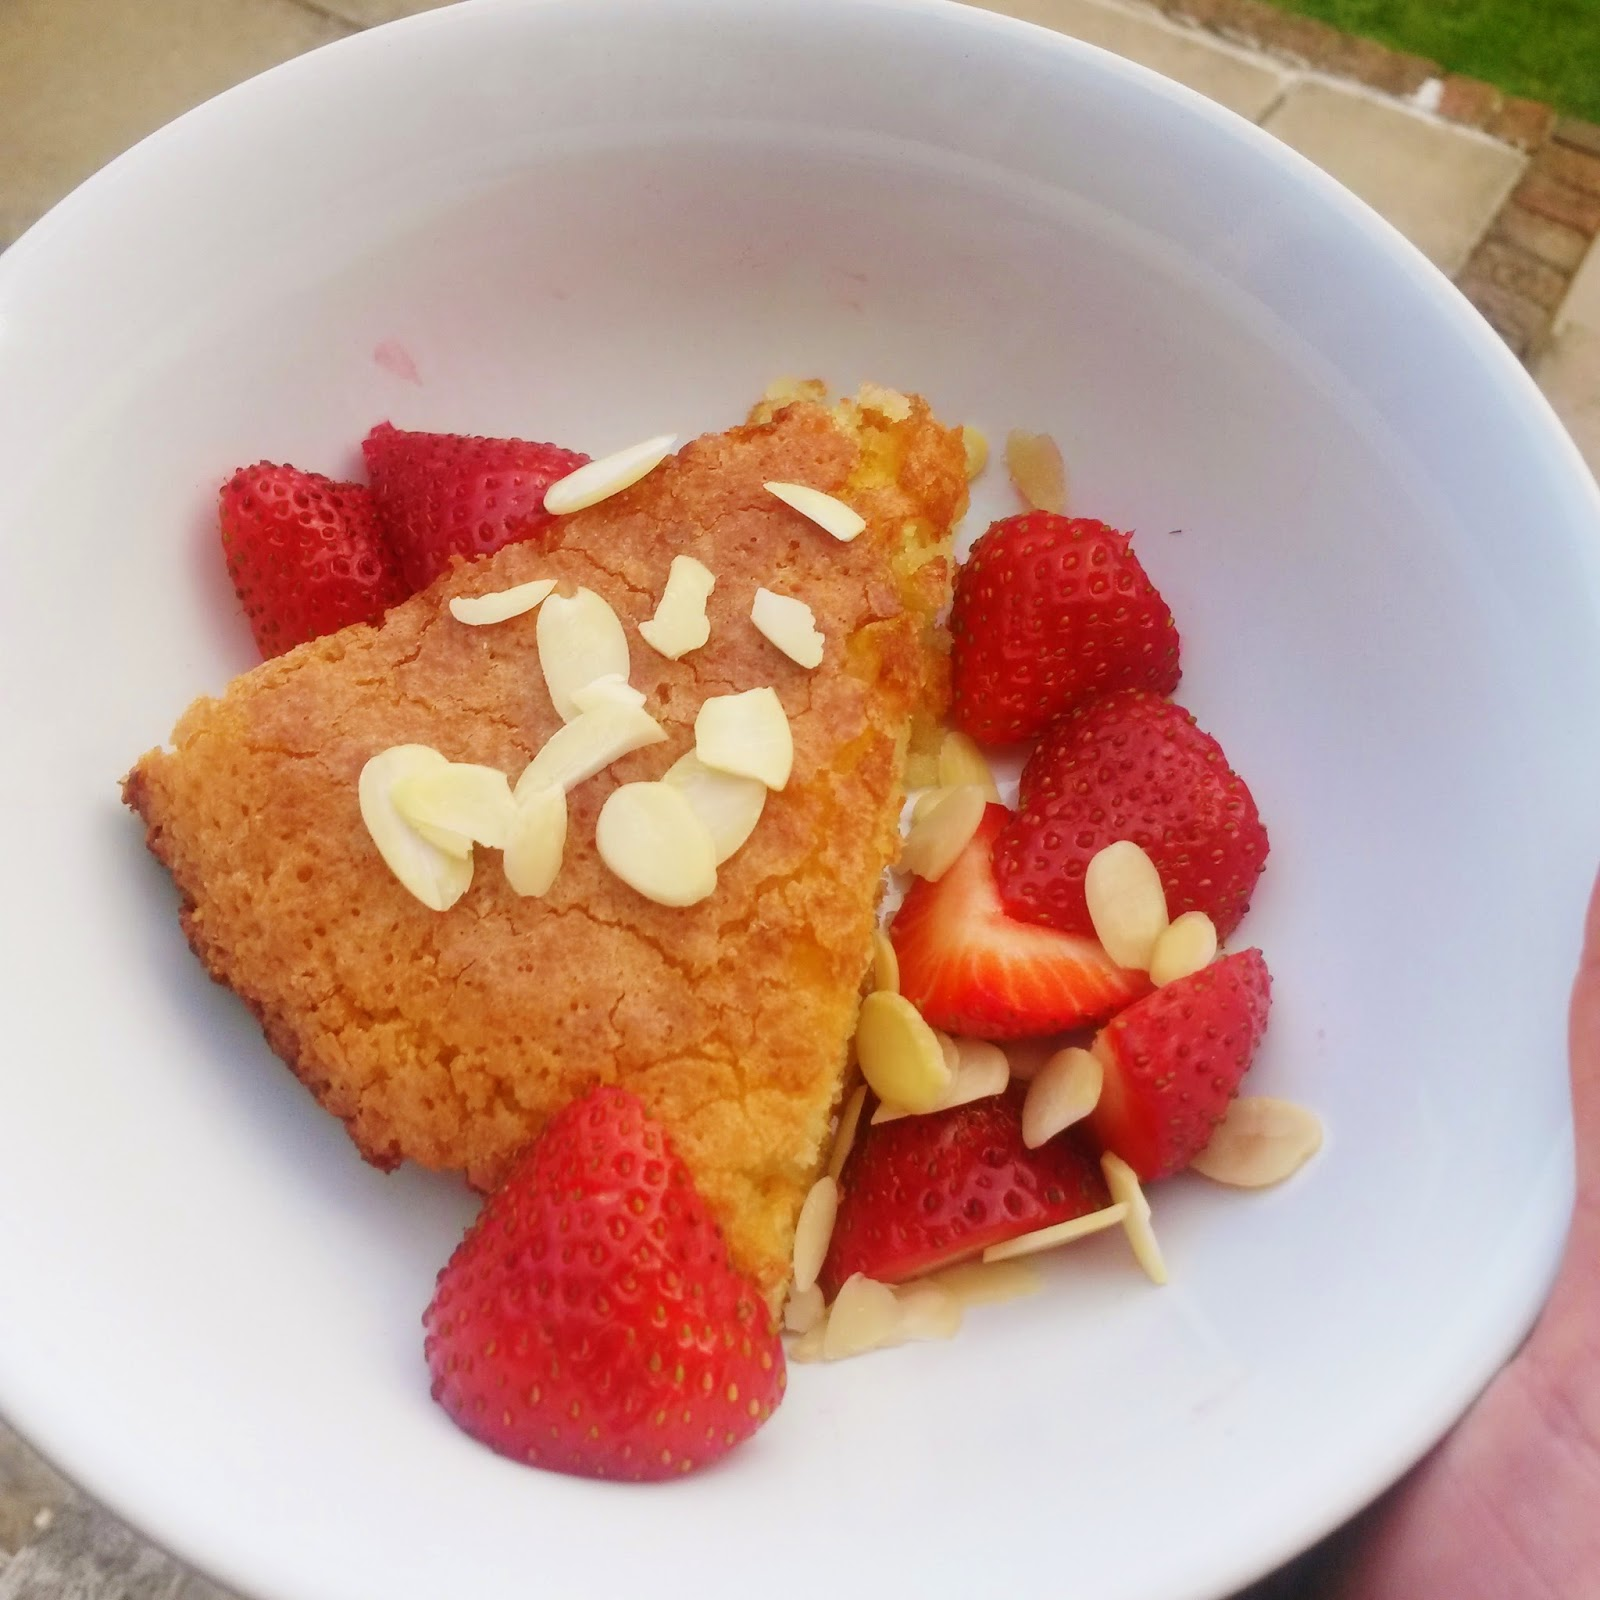 Flourless, gluten free almond and coconut cake with strawberries